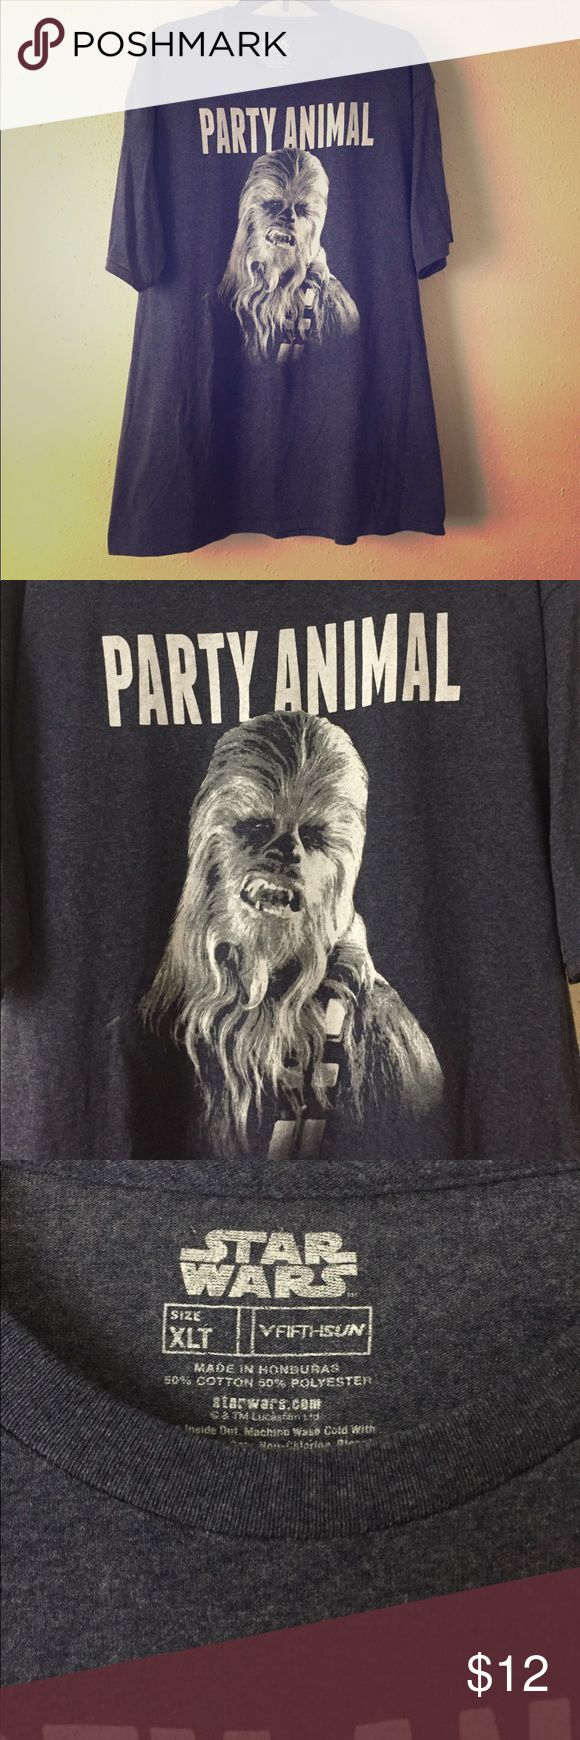 Star Wars Chewbaca Party Animal Tee Pretty awesome Chewy Party Animal Tee. Charcoal Gray. Size XLT. Gently worn. Star Wars Shirts Tees - Short Sleeve